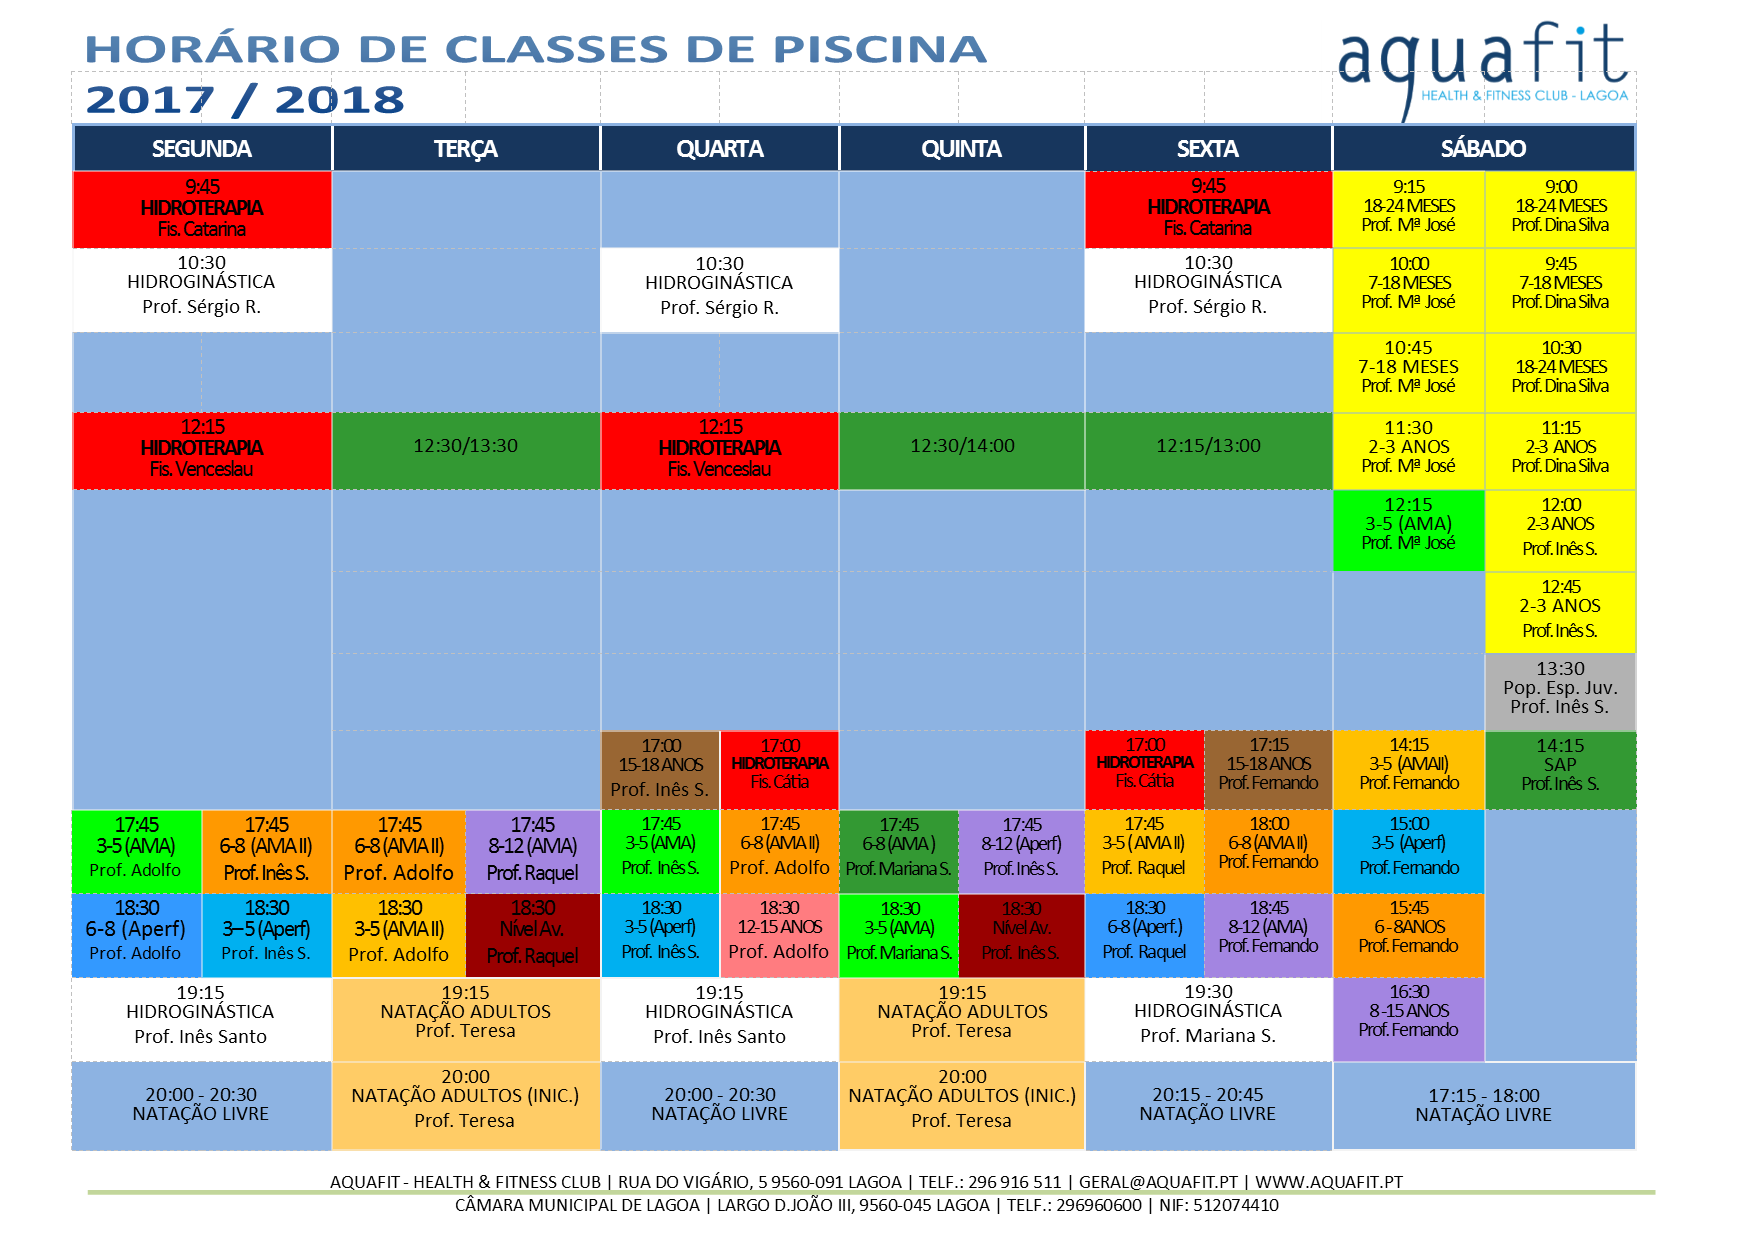 aquafit classes de piscina hor rios 2017 2018